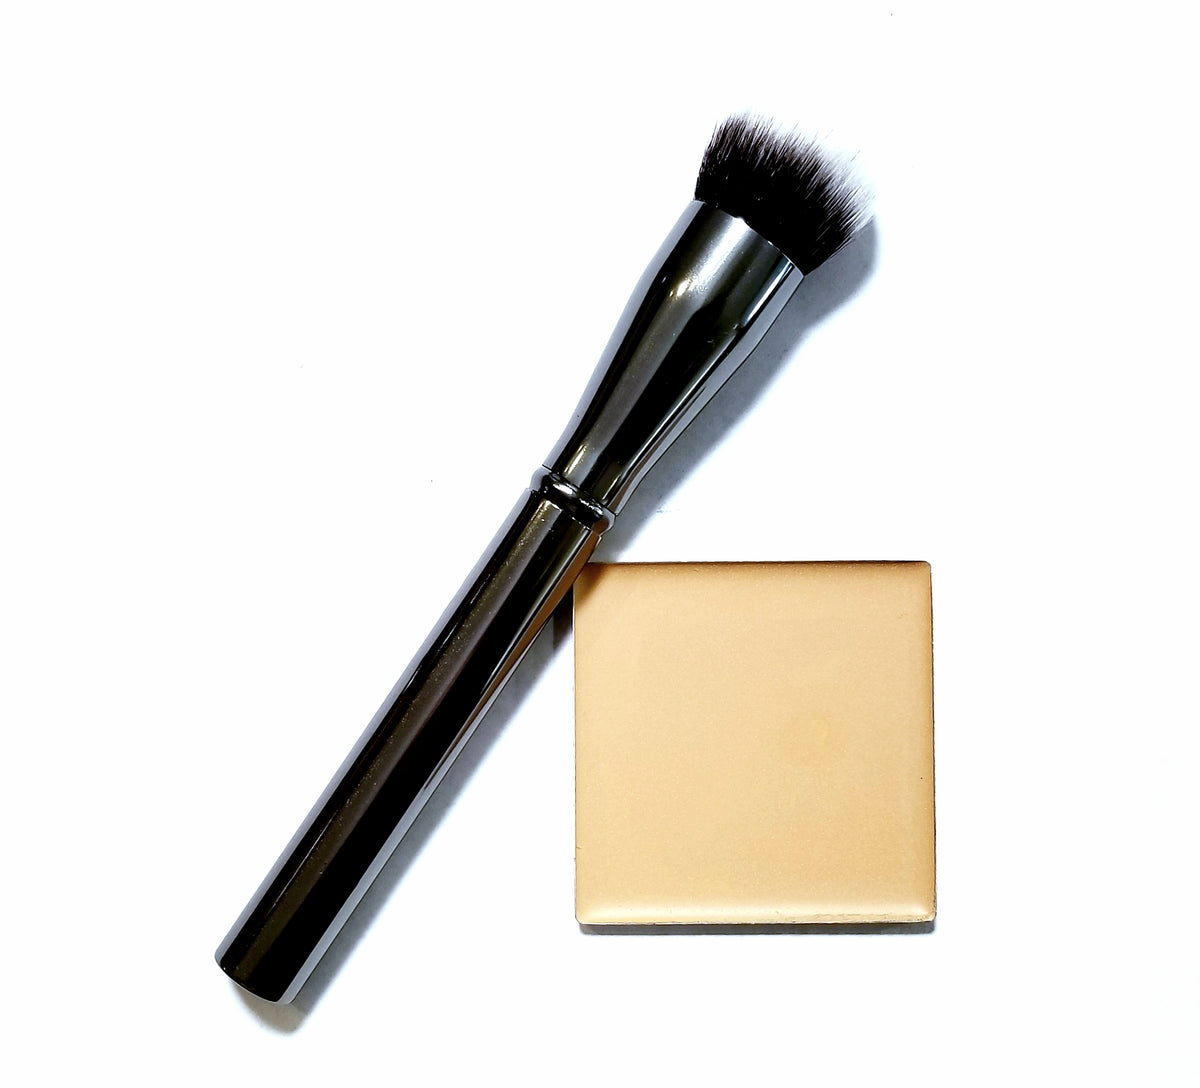 The Magic 3 in 1 Foundation and application brush